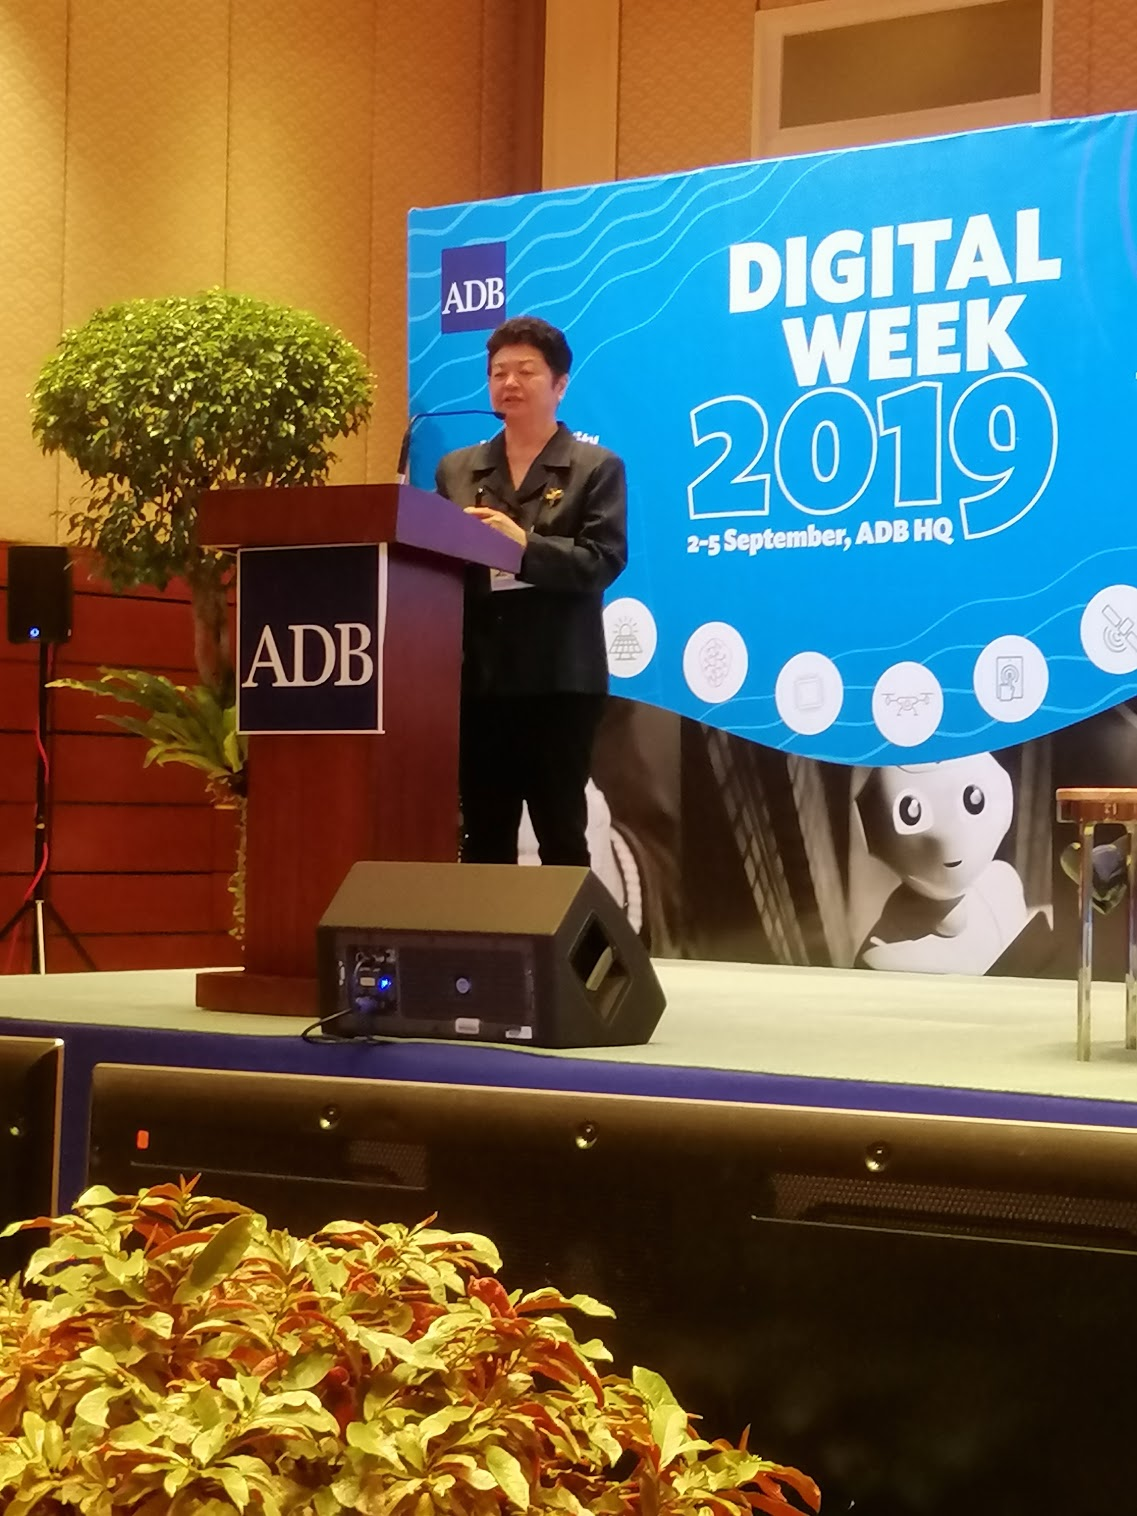 """10:45 a.m. - """"We need to think more deeply about the digital skills that the bank needs.""""Ma. Carmen Testa, Adjunct Faculty and Interim Head, School of Executive Education of the Asian Institute of Management discusses Digital Skills."""